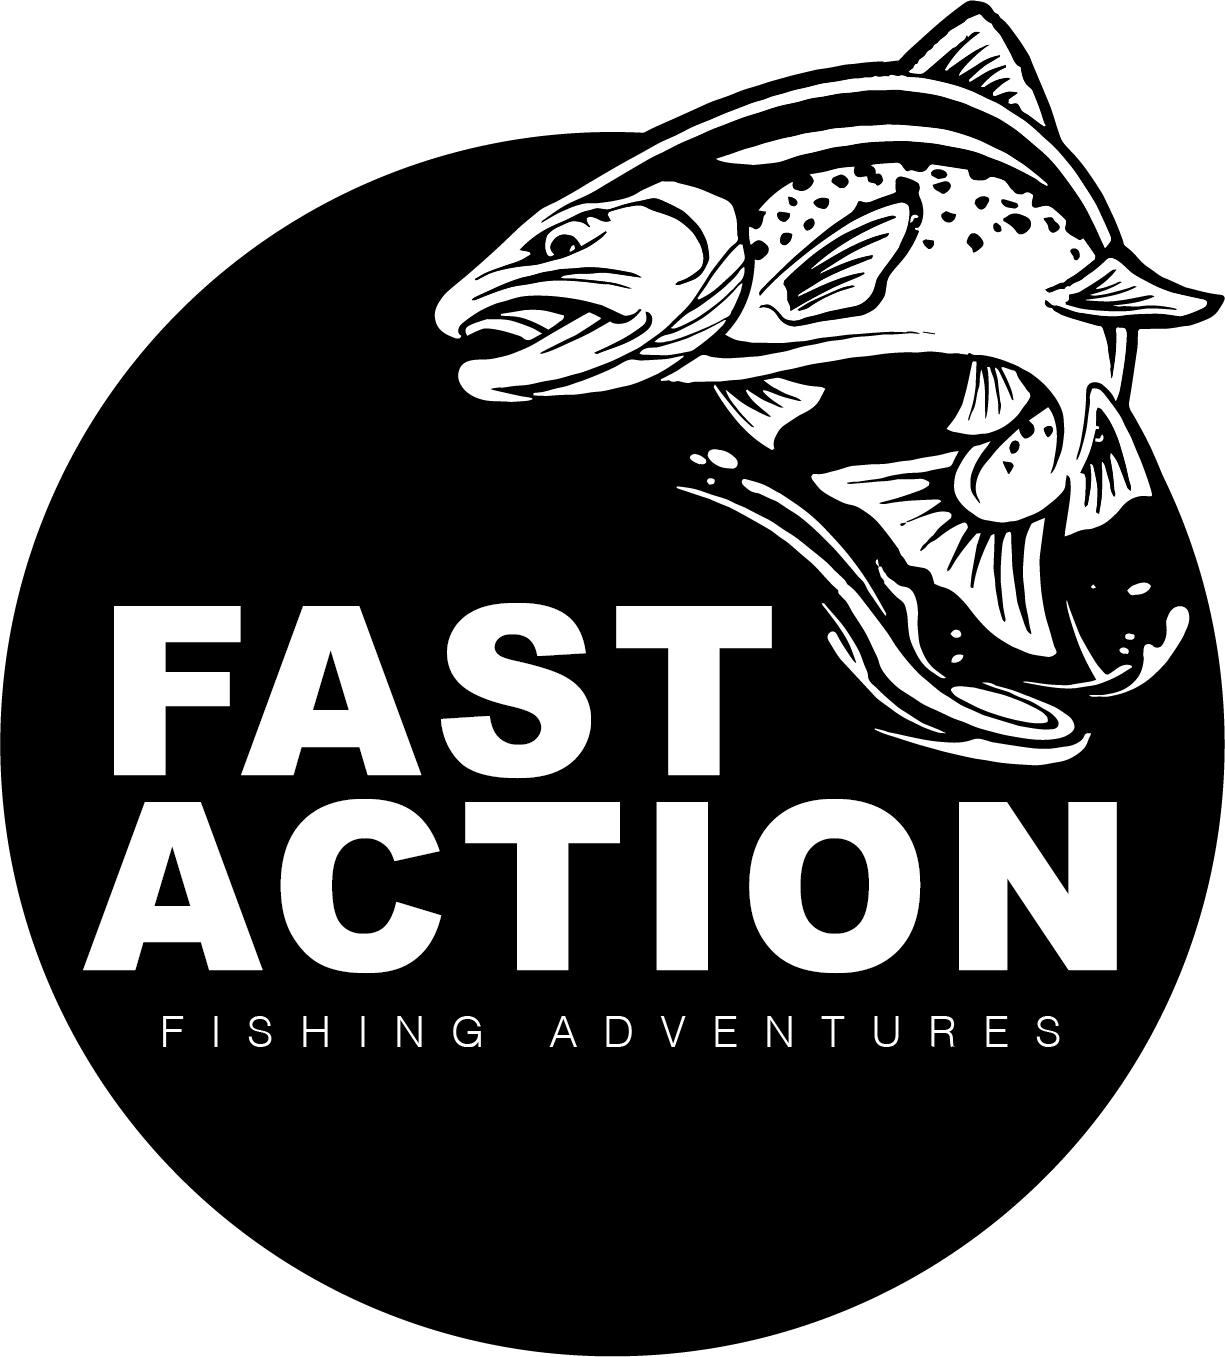 Fast Action Fishing Adventures